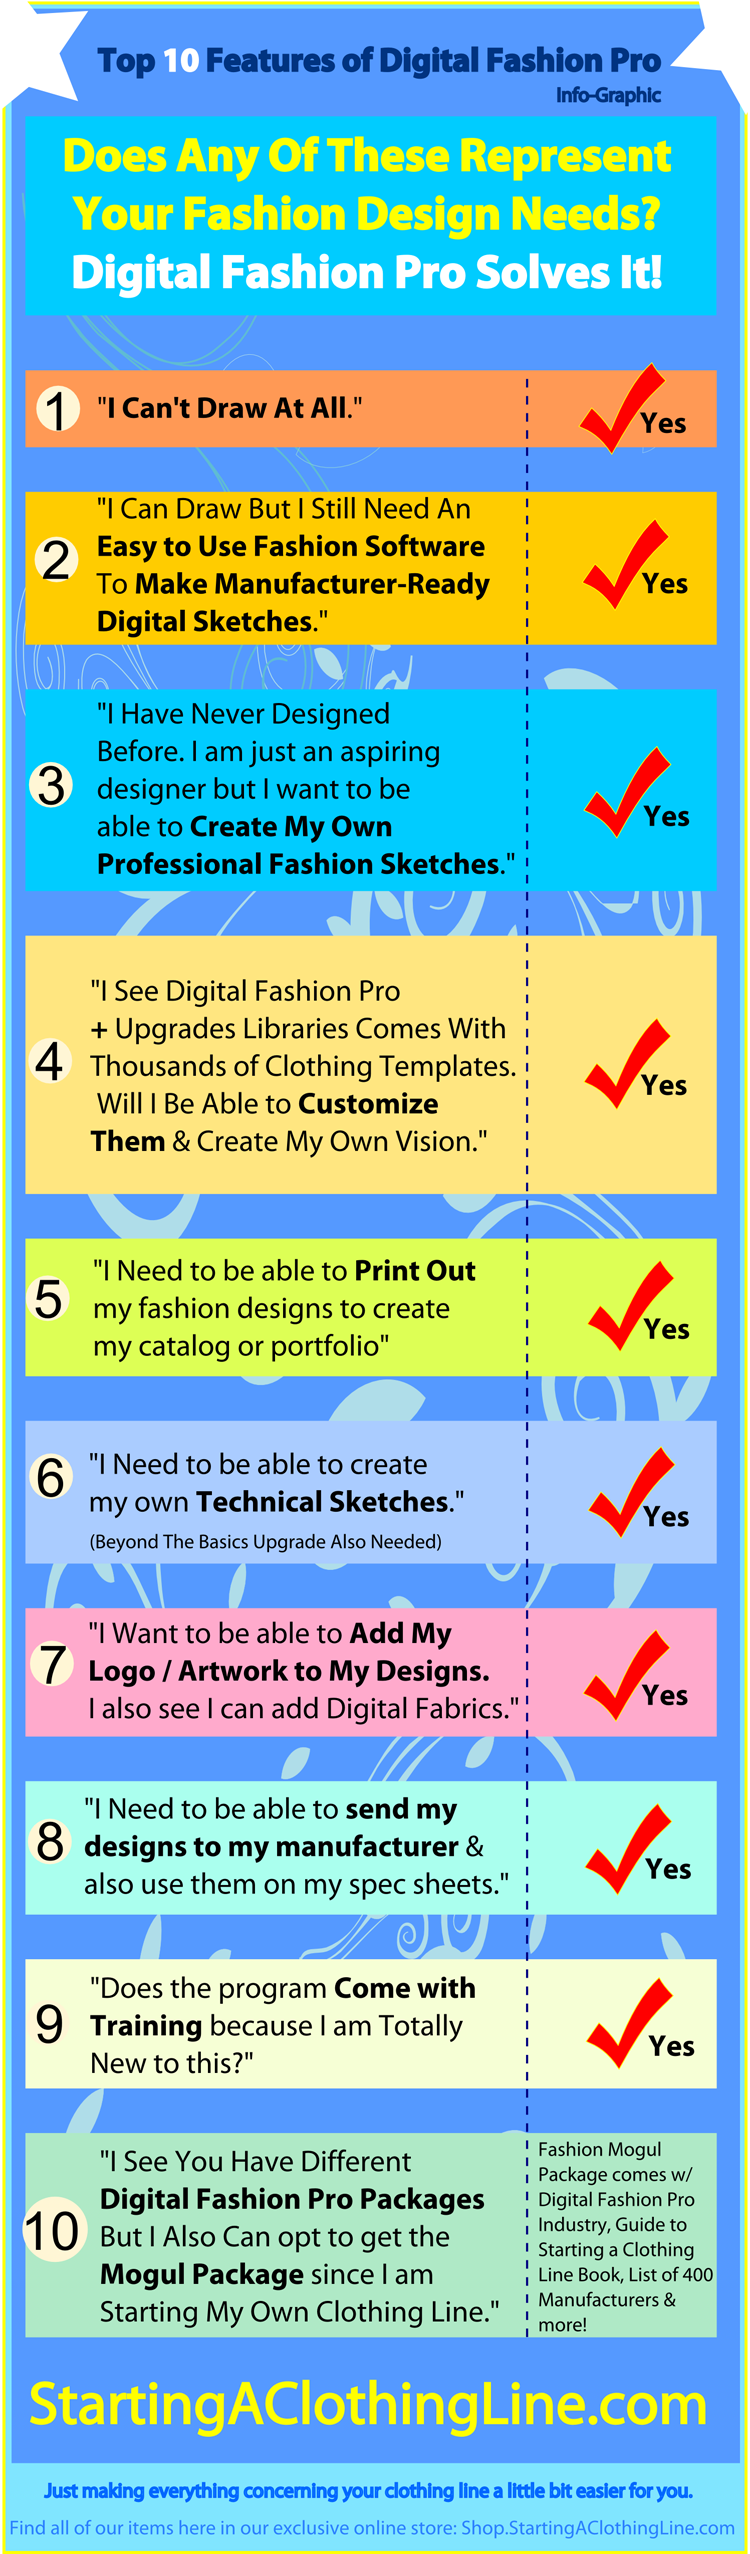 Fashion Designing Info-Graphic - Guide to Designing With Digital Fashion Pro